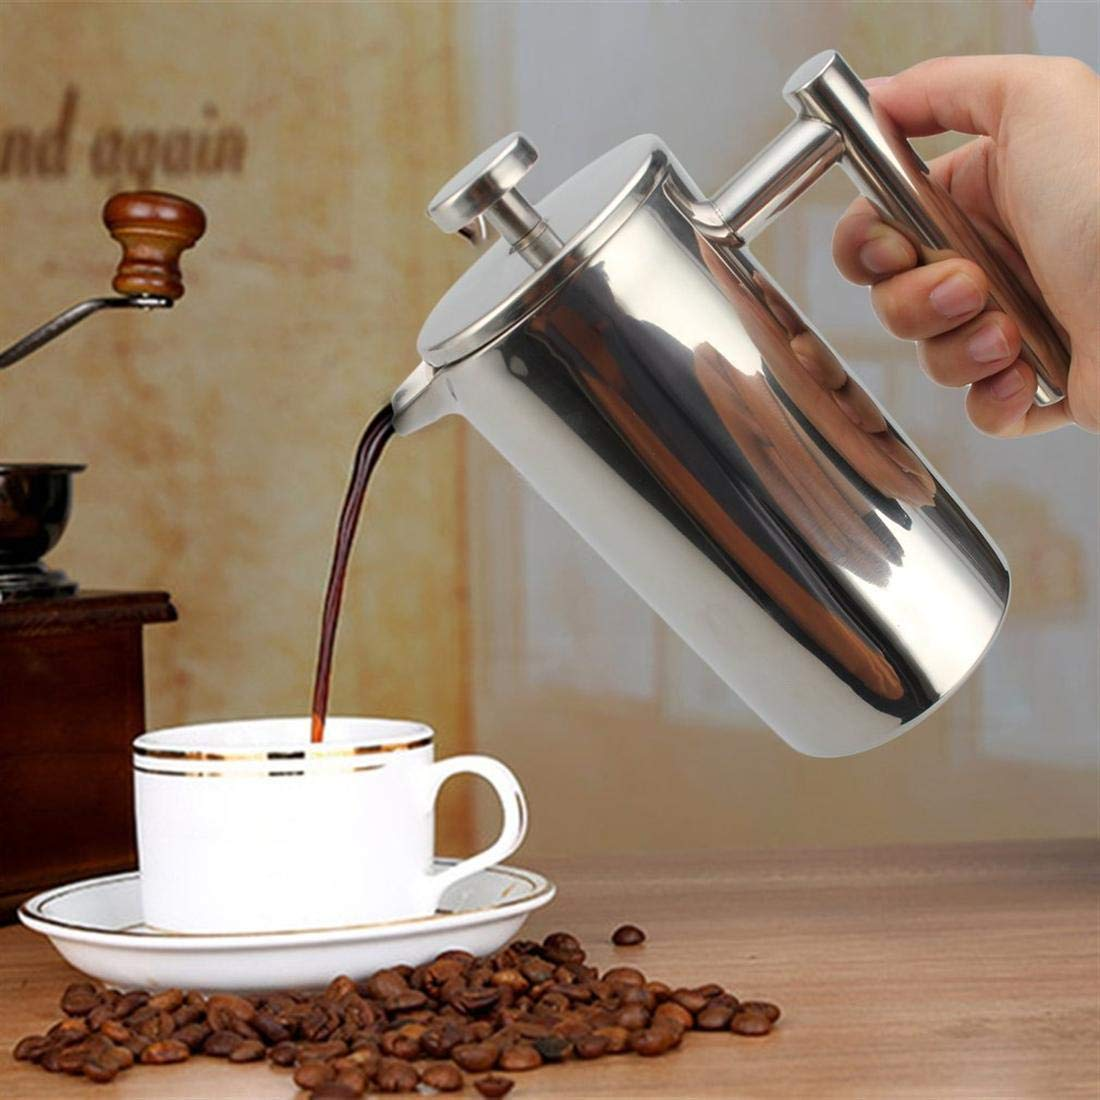 Seatour 1000ML Stainless Steel Double Wall Insulated French Press Coffee Tea Pot with Filter by Seatour (Image #7)